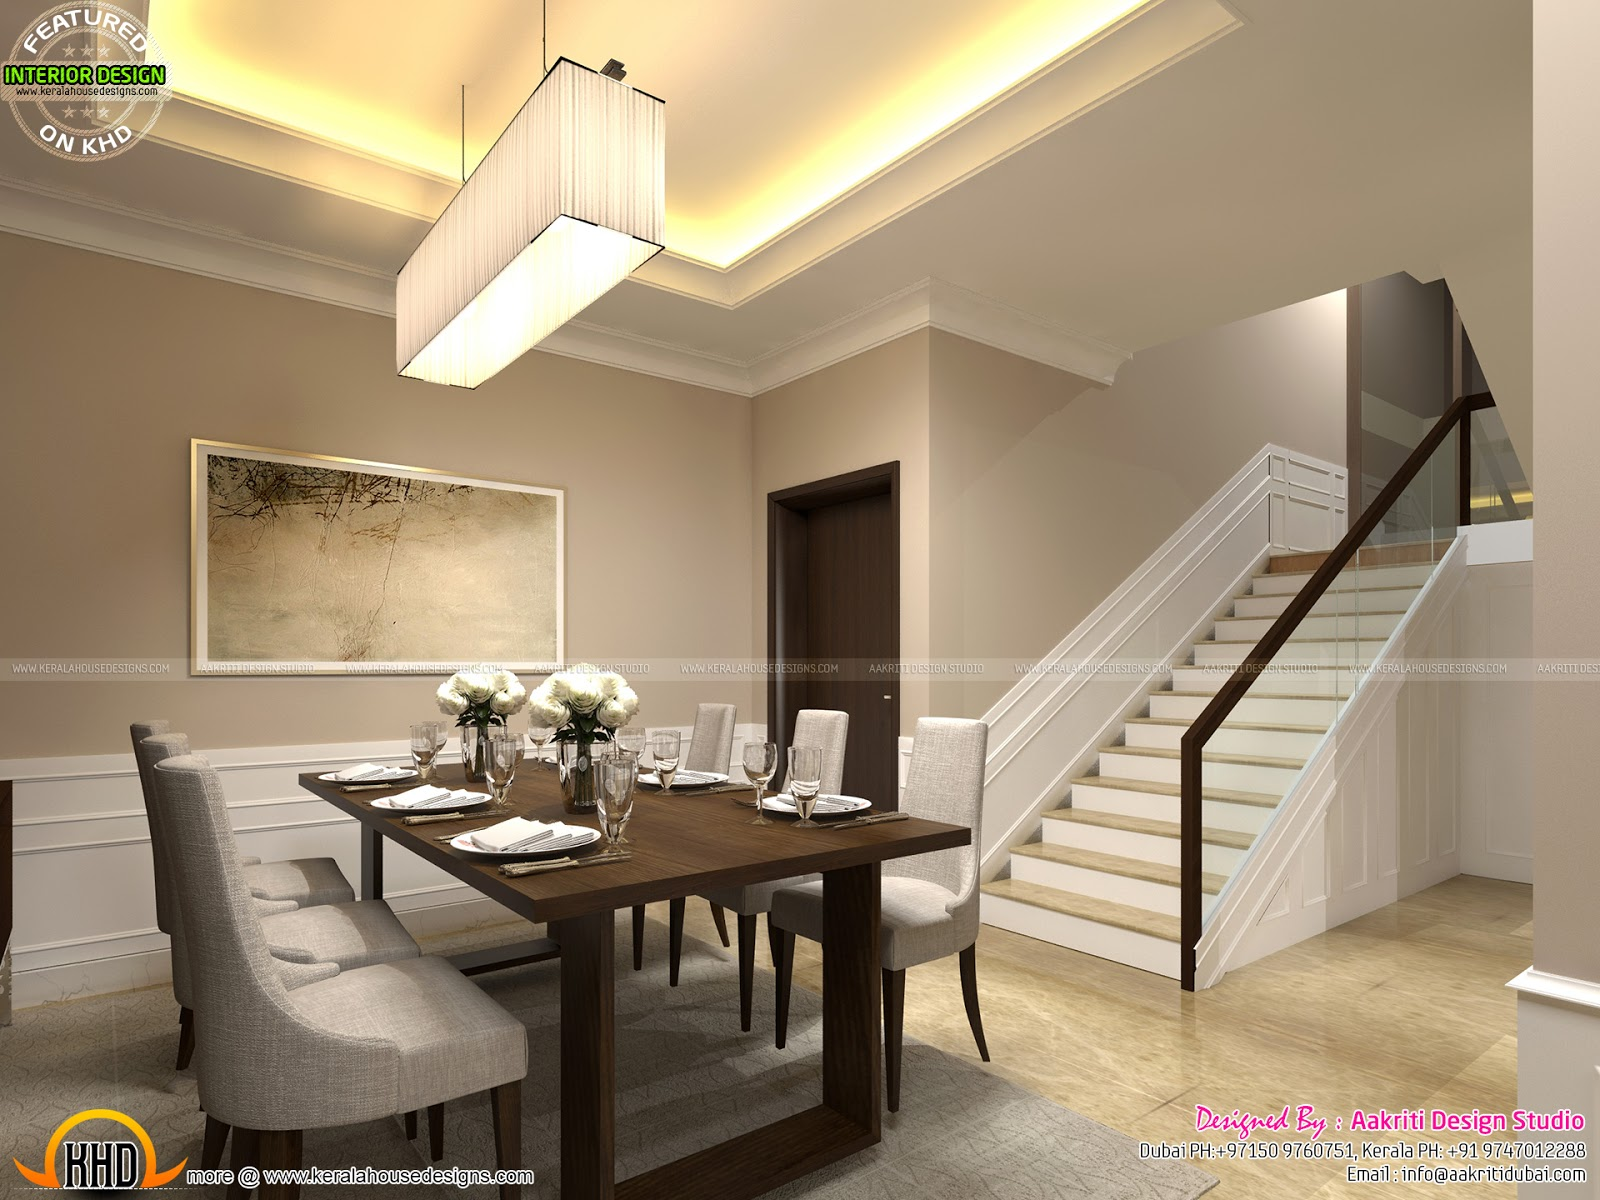 Classic style interior design for living room stair area for Dining room ideas kerala